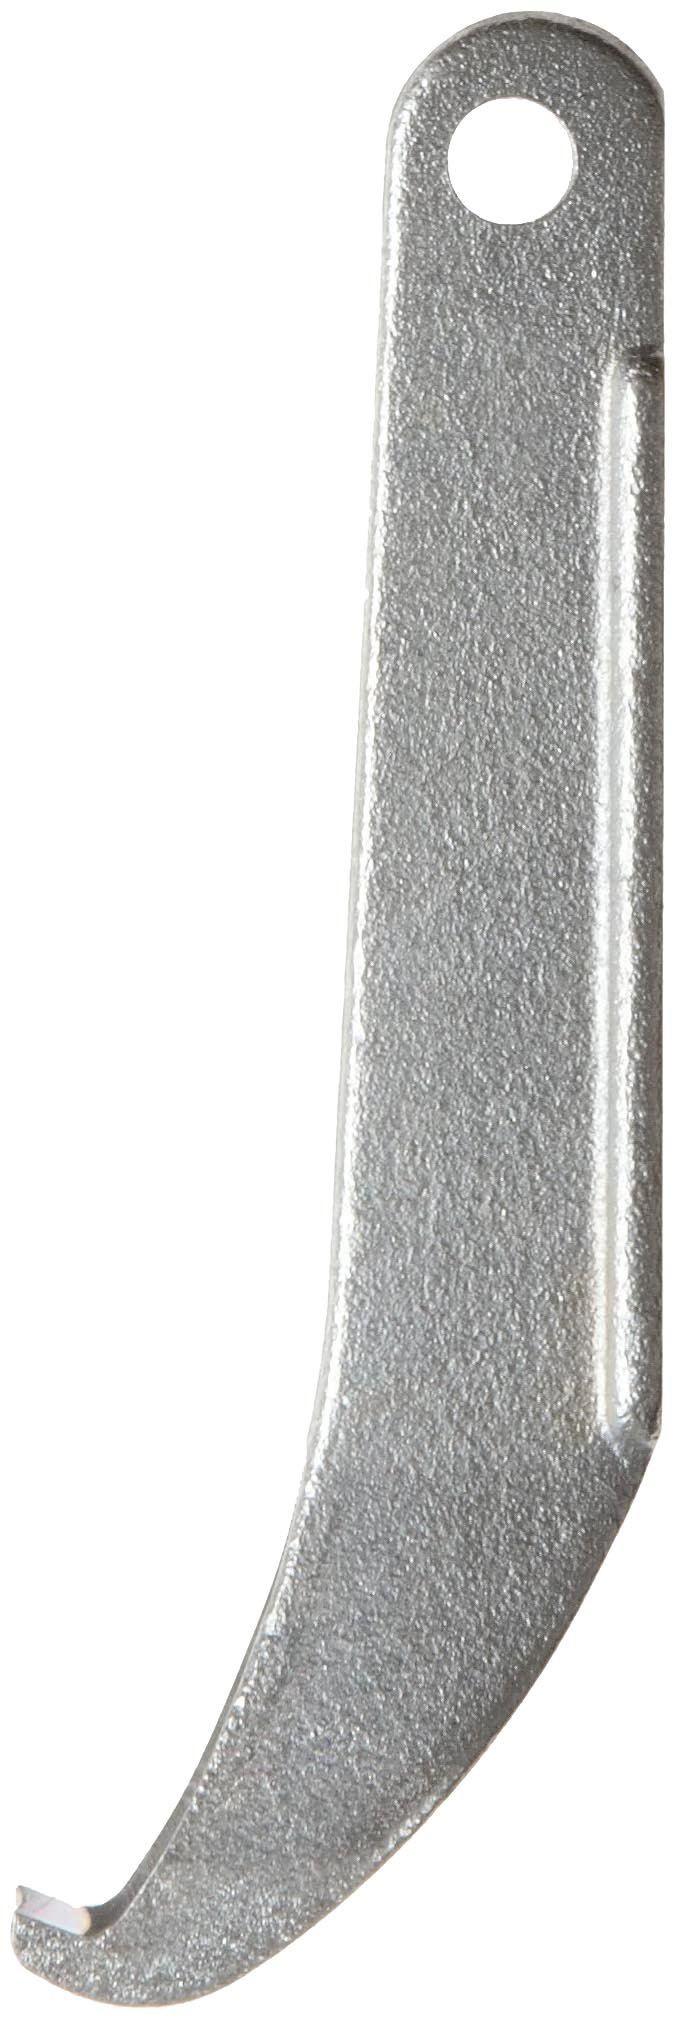 Posi Lock 10654 Puller Jaw, For Use With 106 and